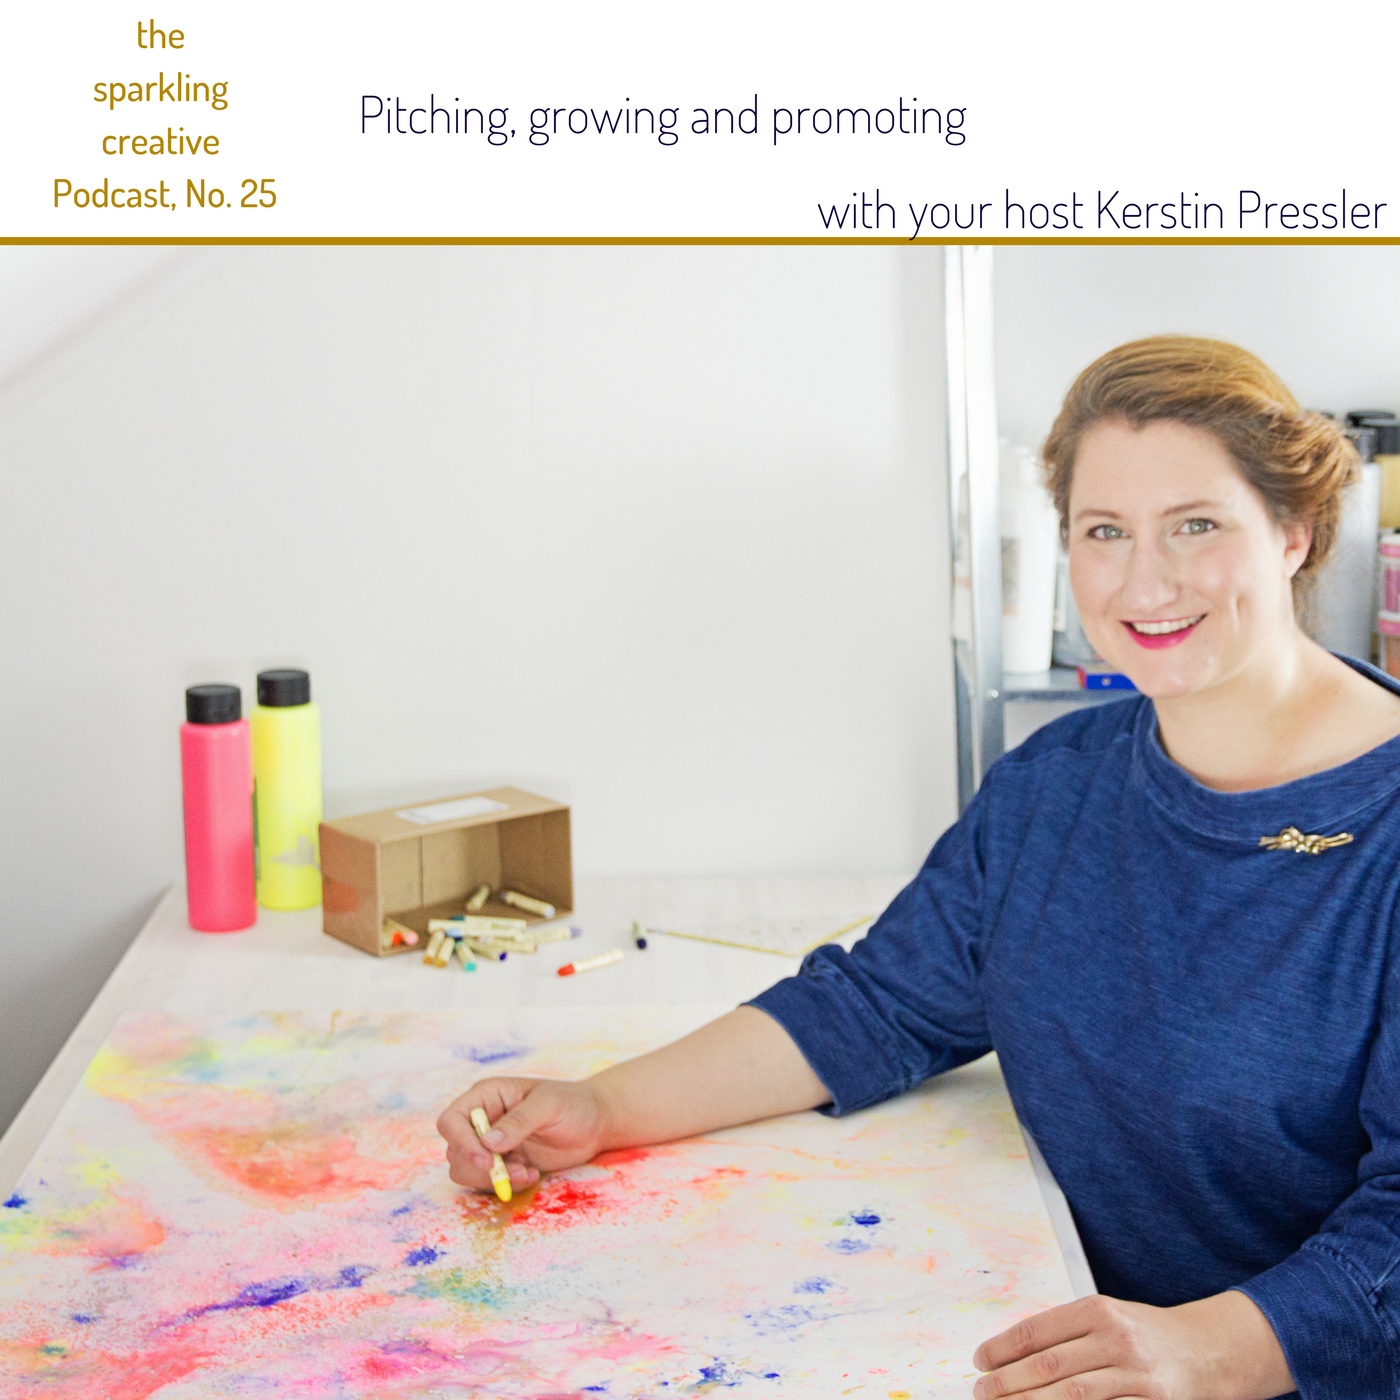 The sparkling creative Podcast Episode No. 25. Pitching, growing and promoting.